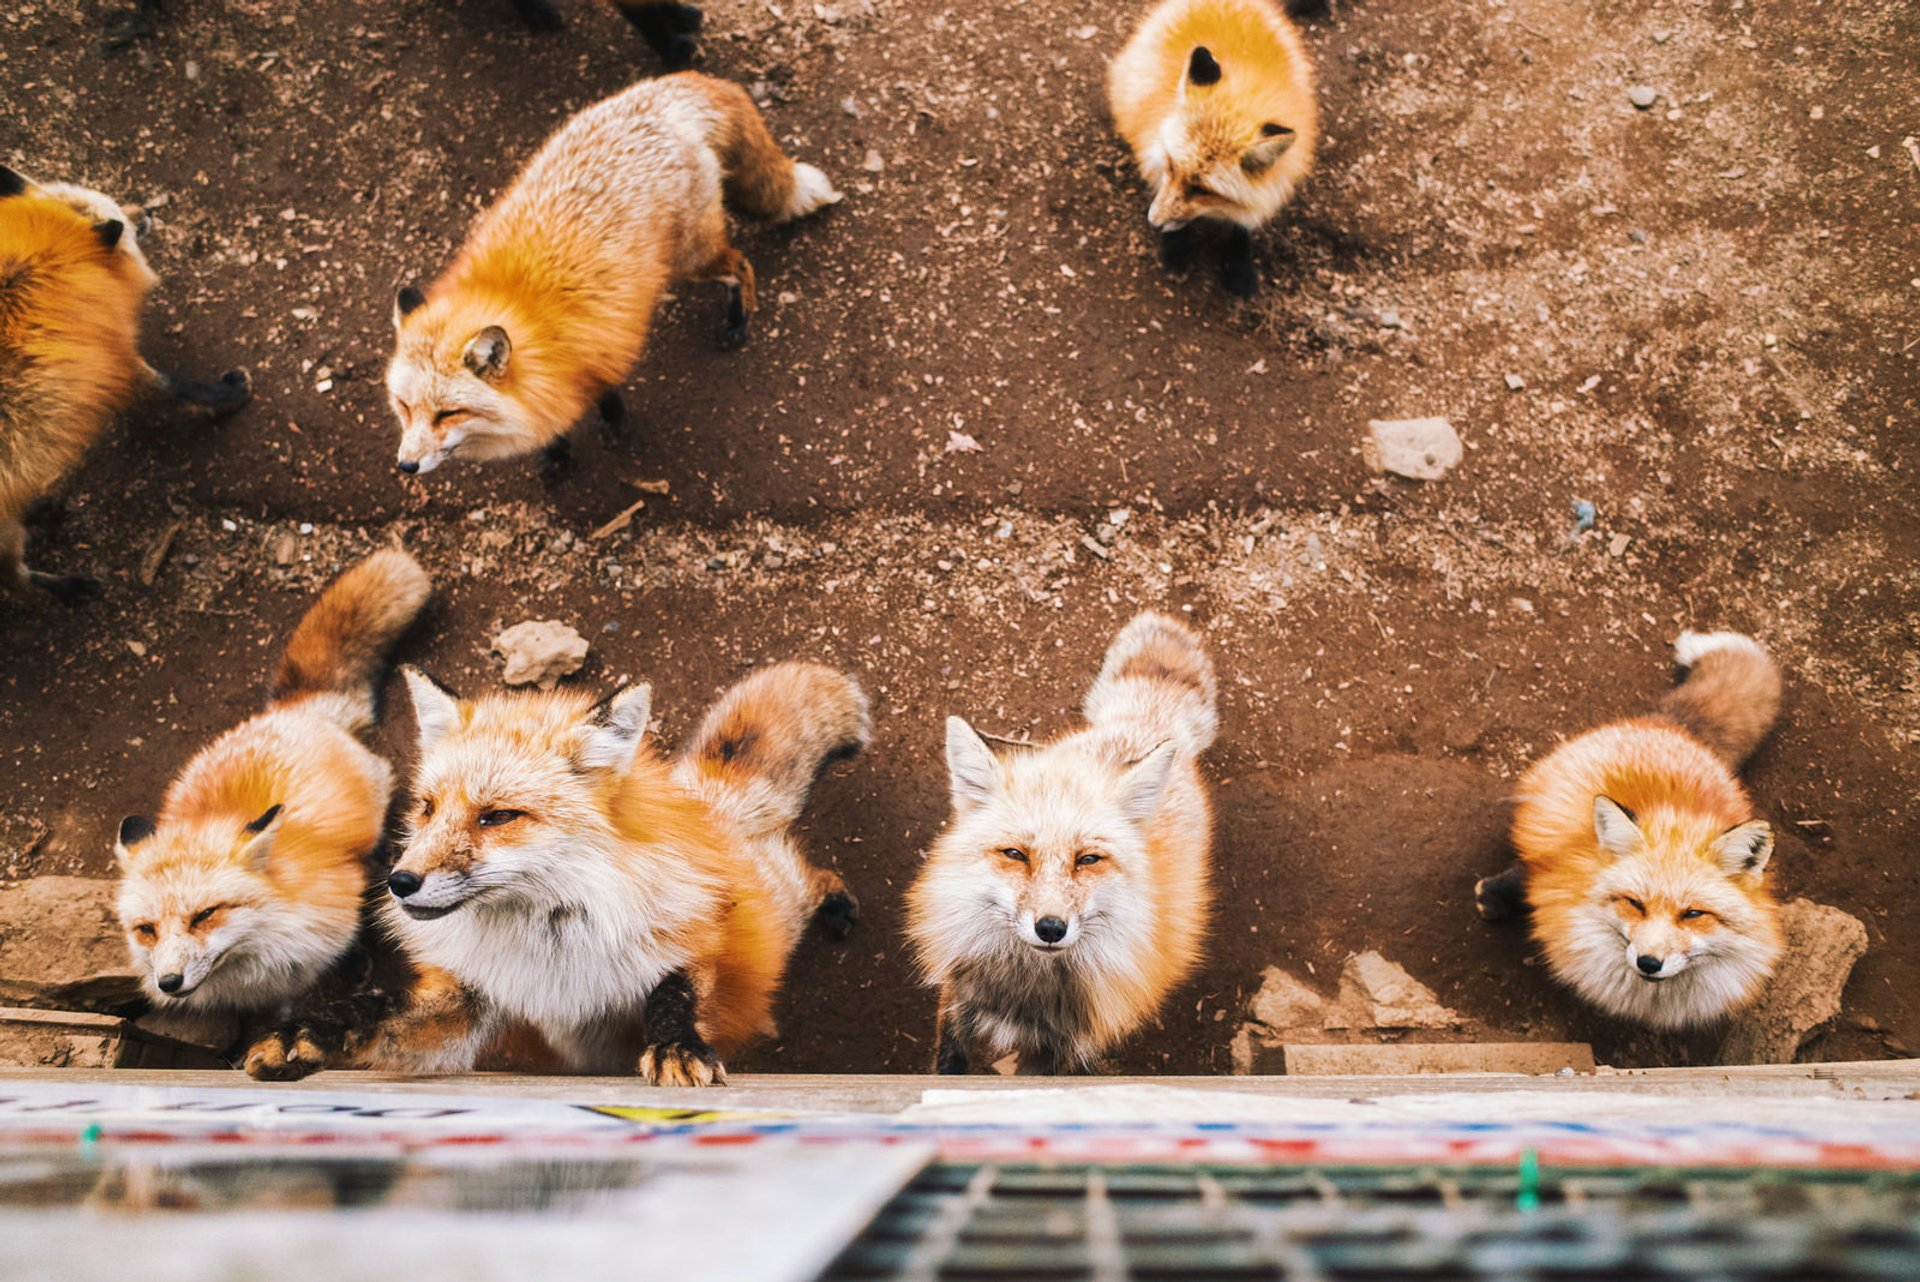 Zao Fox Village in Japan 2019 - Best Time